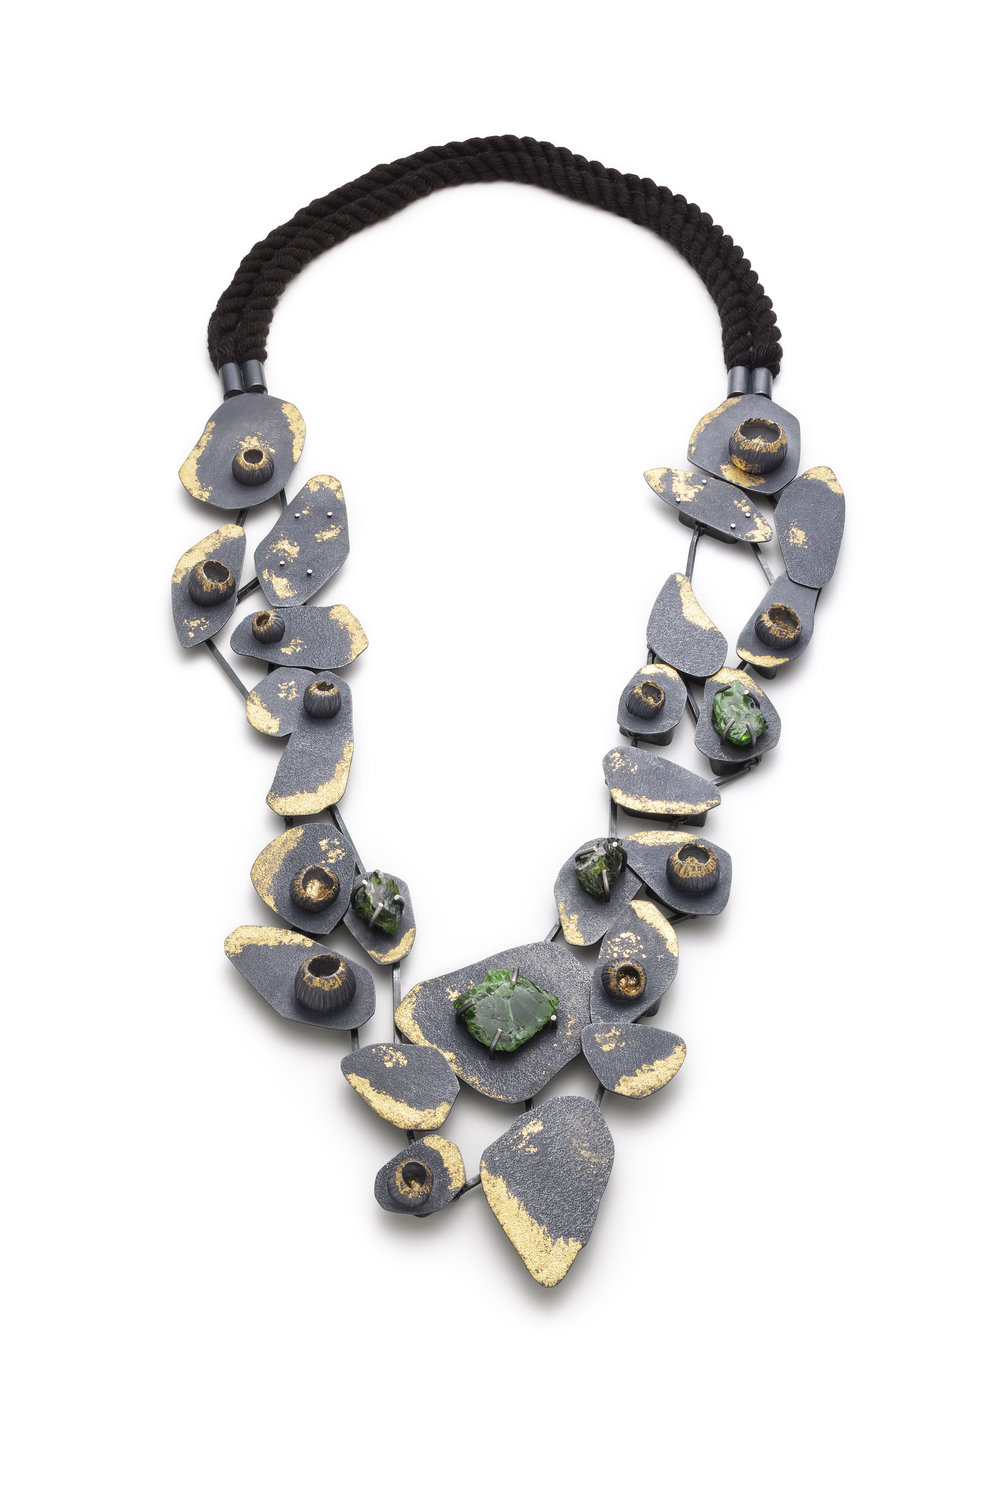 Sabrina Couillard  Maman, collection Résilience familiale   Neckpiece (2018) Sterling silver, 23k gold leaf, chrome diopside